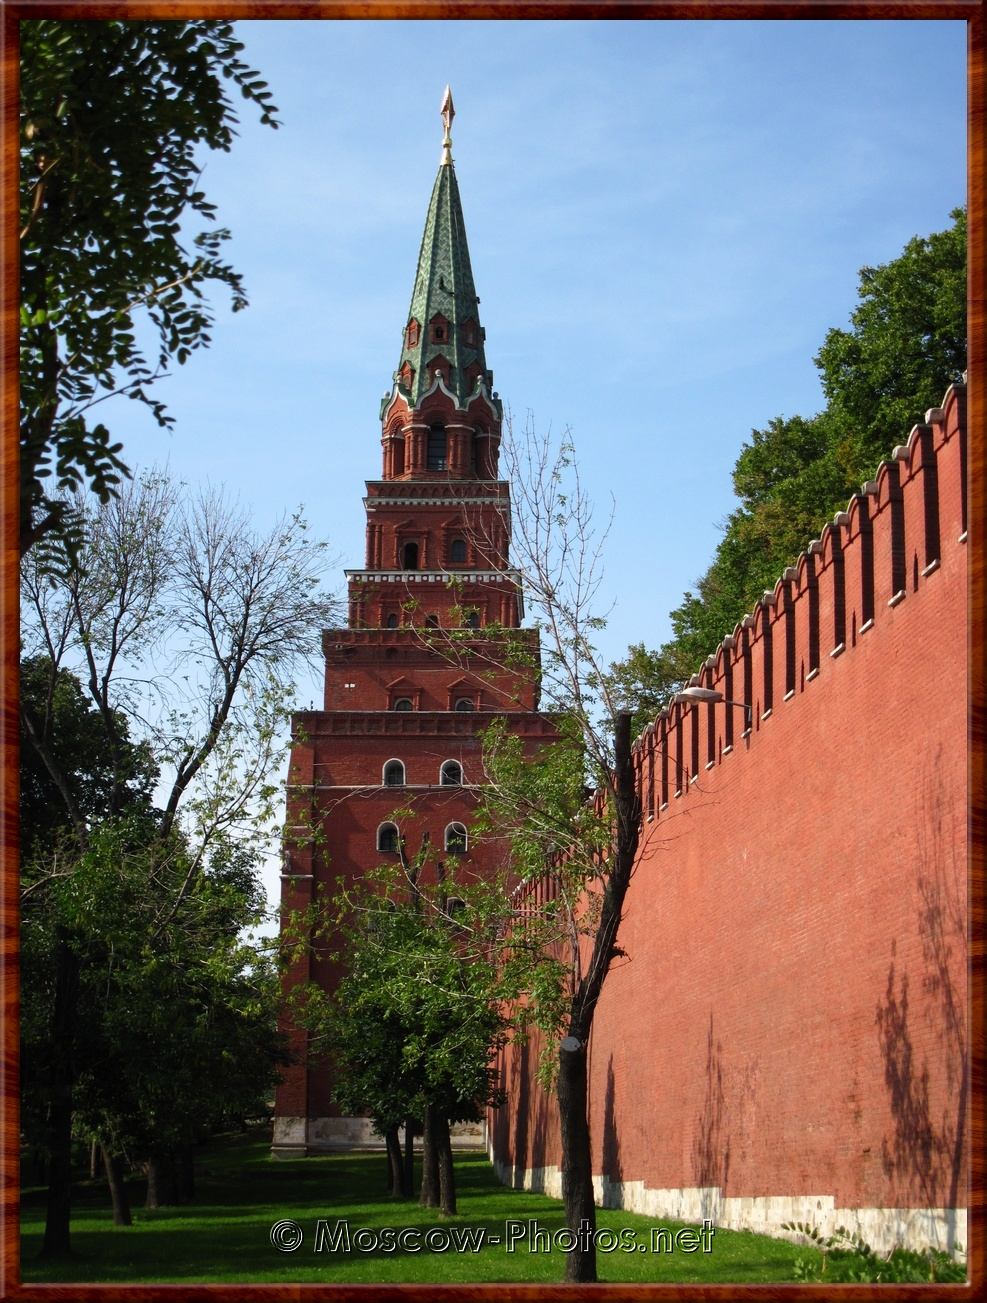 The Borovitskaya Tower (Predtechenskaya, the Precursor's)